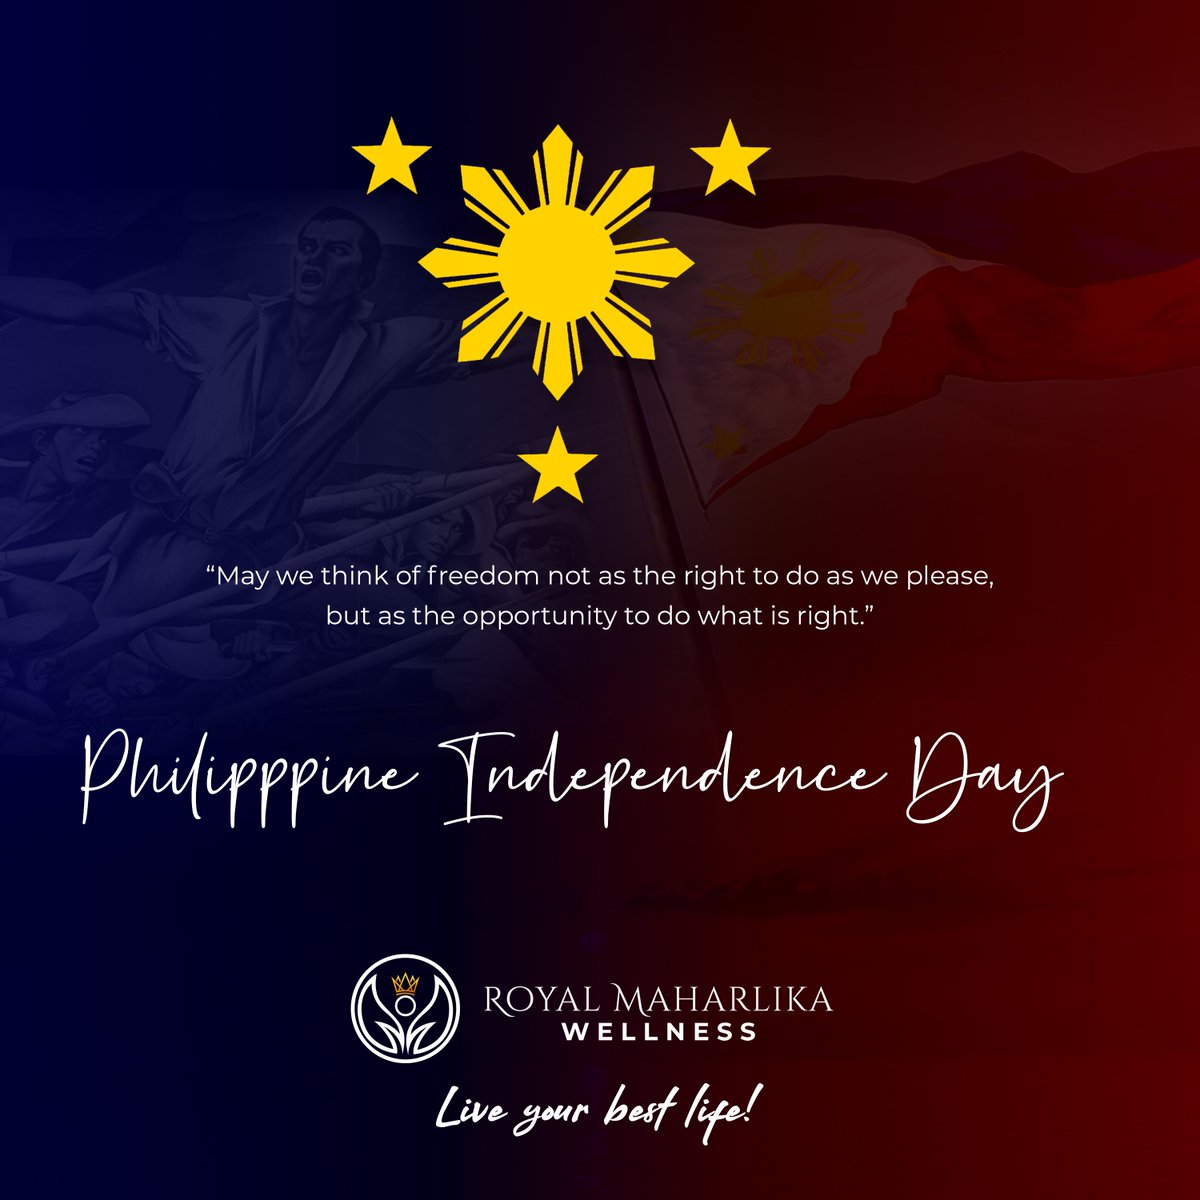 Let's make every Independence Day and everyday a time to use freedom well. #HappyPhilippineIndependenceDay https://t.co/ApR14SOUIw